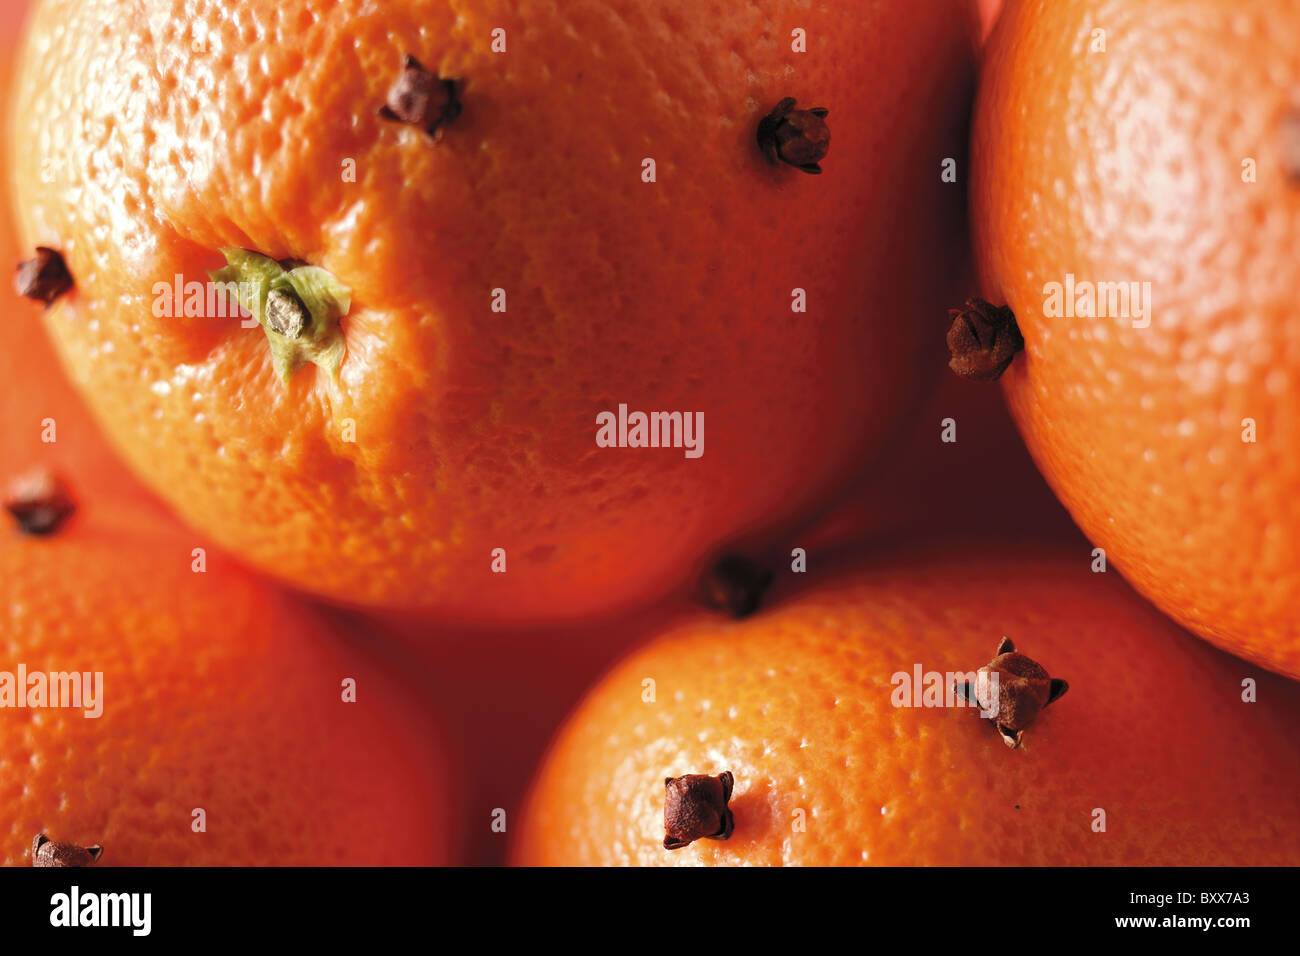 Whole oranges studded with cloves - Stock Image